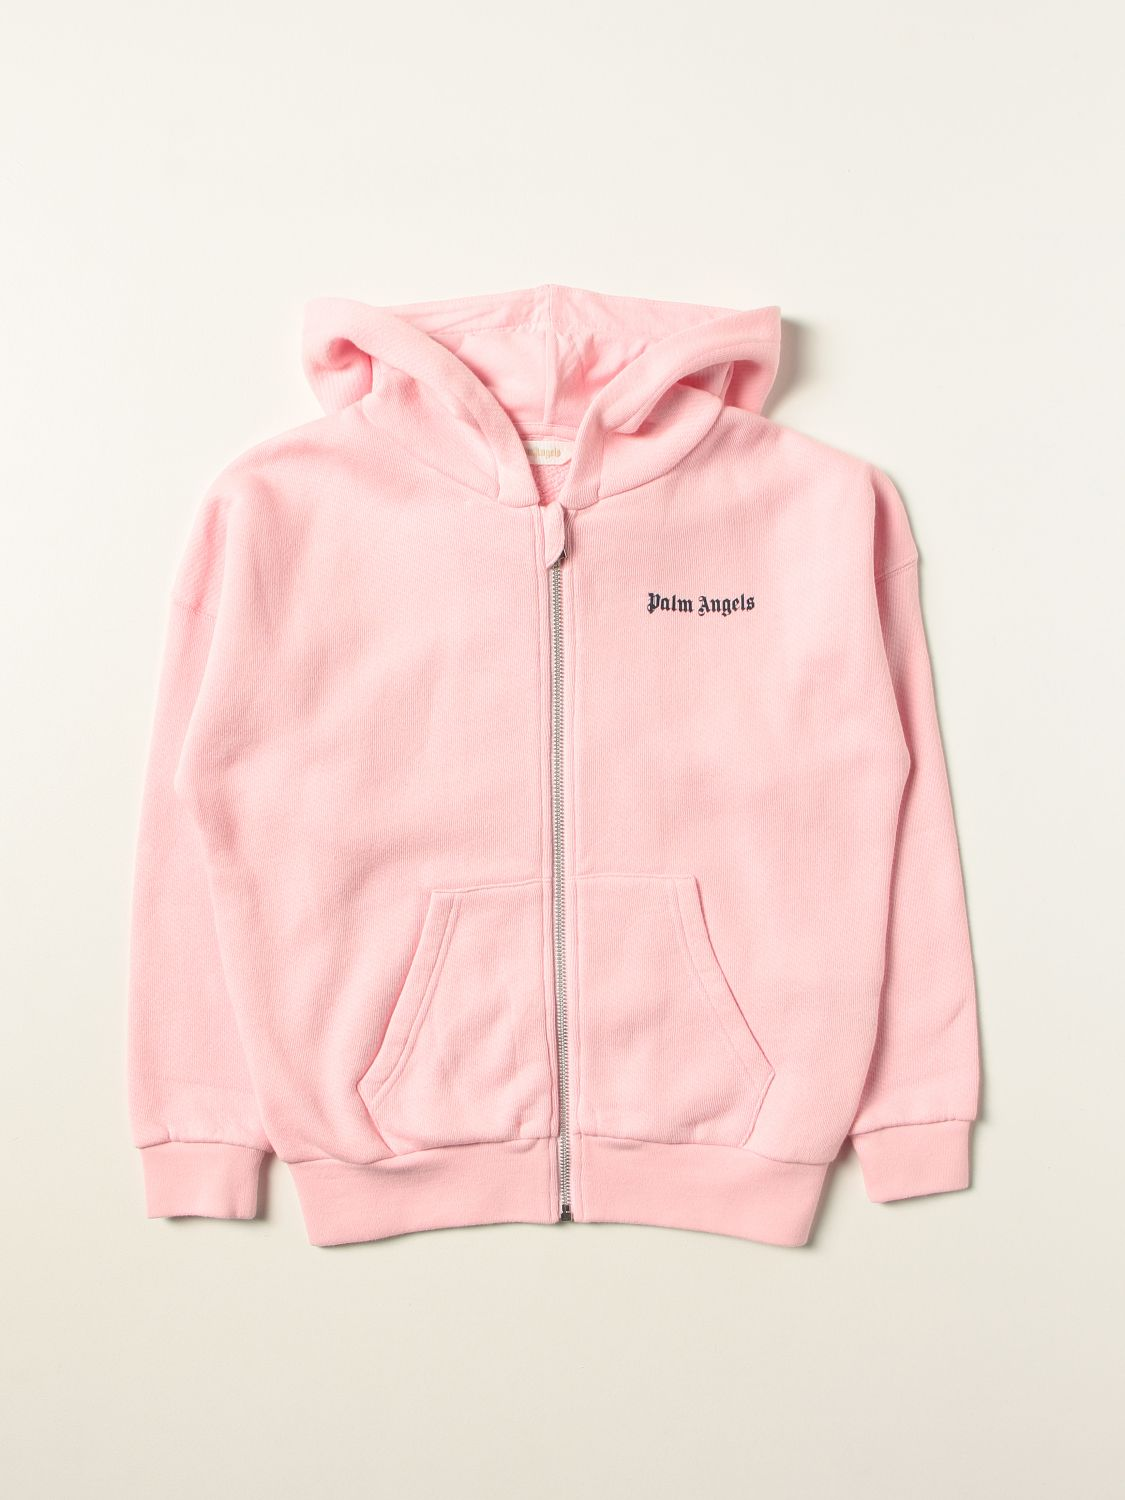 Sweater Palm Angels: Sweater kids Palm Angels pink 1